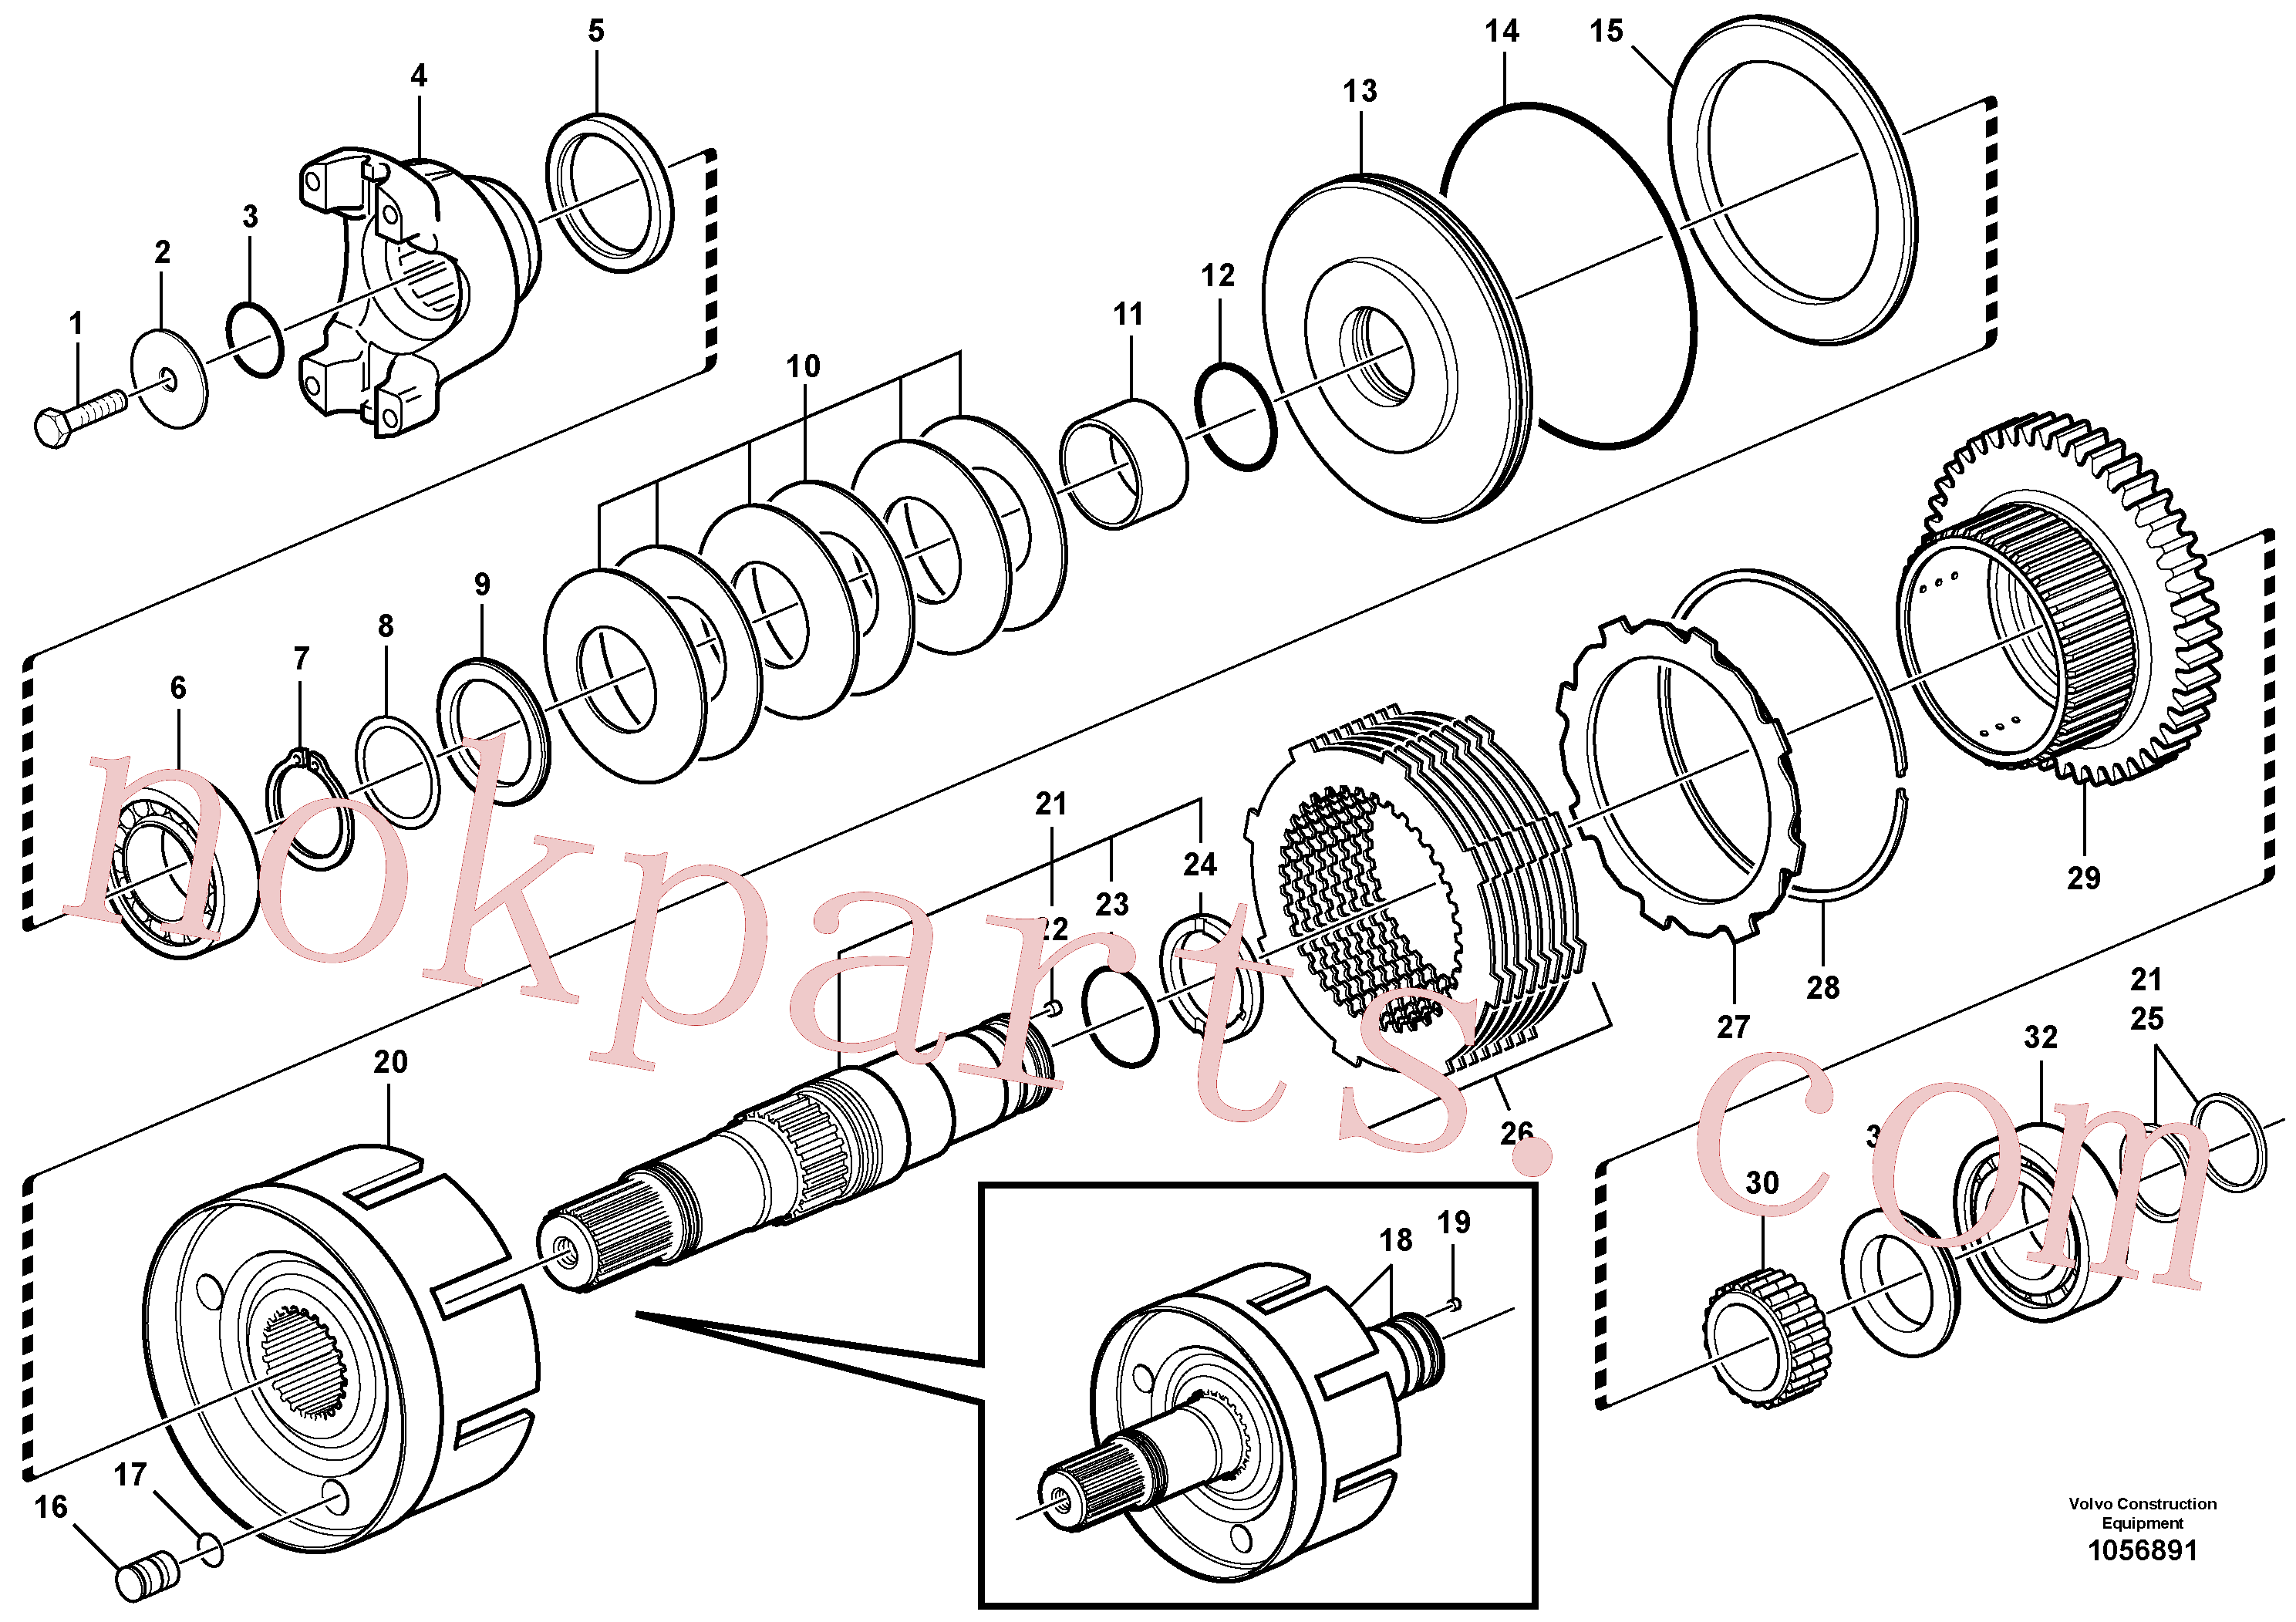 VOE11712469 for Volvo Hydraulic clutch, 4wd(1056891 assembly)